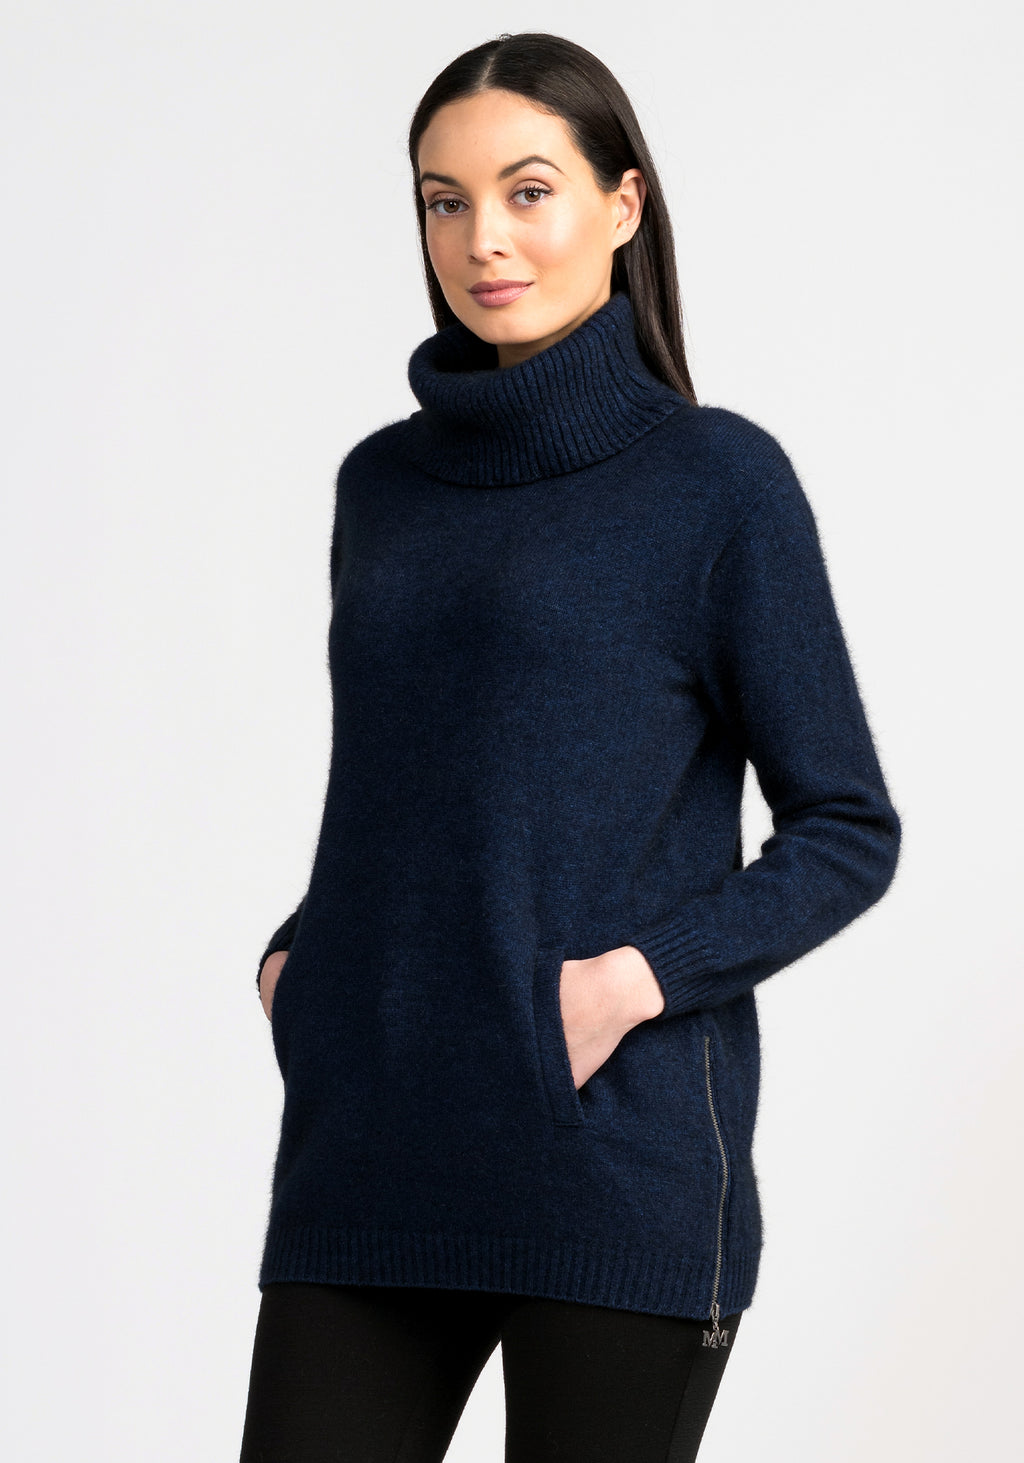 ZIP TUNIC SWEATER - Woolshed Gallery